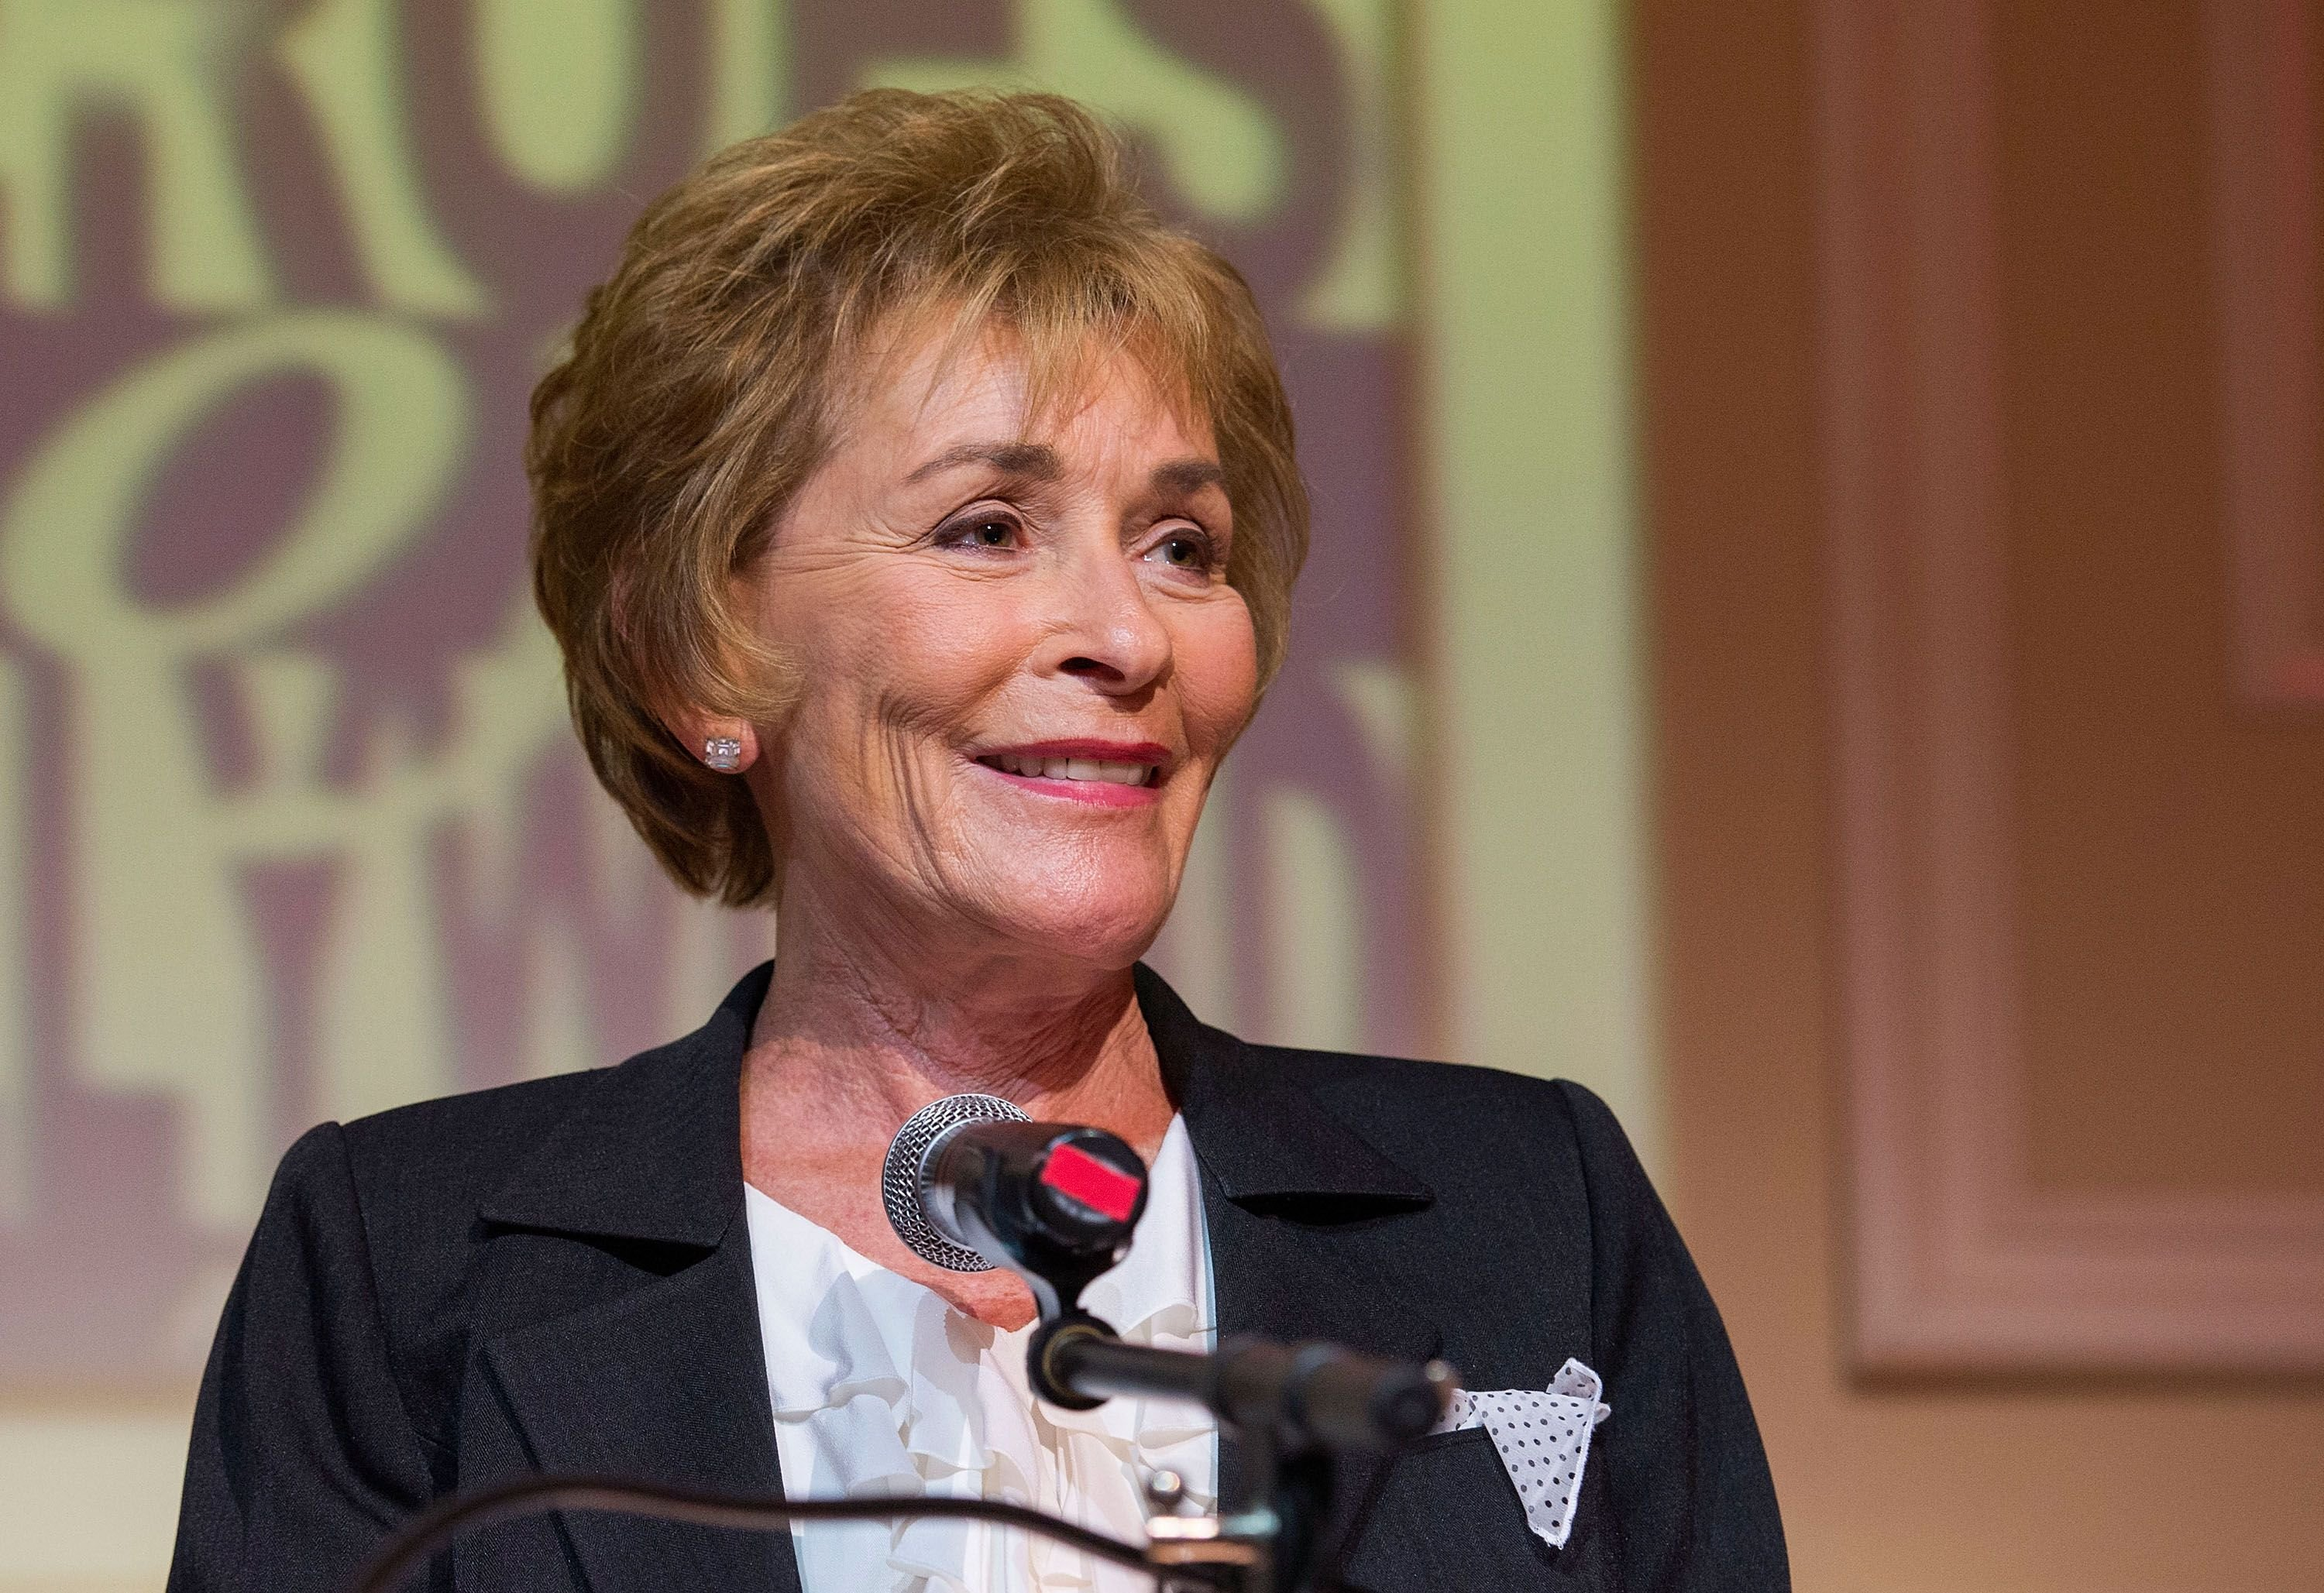 Judge Judy Sheindlin at the Heroes Of Hollywood Luncheon at Taglyan Cultural Complex on June 5, 2014, in California | Photo: Valerie Macon/Getty Images